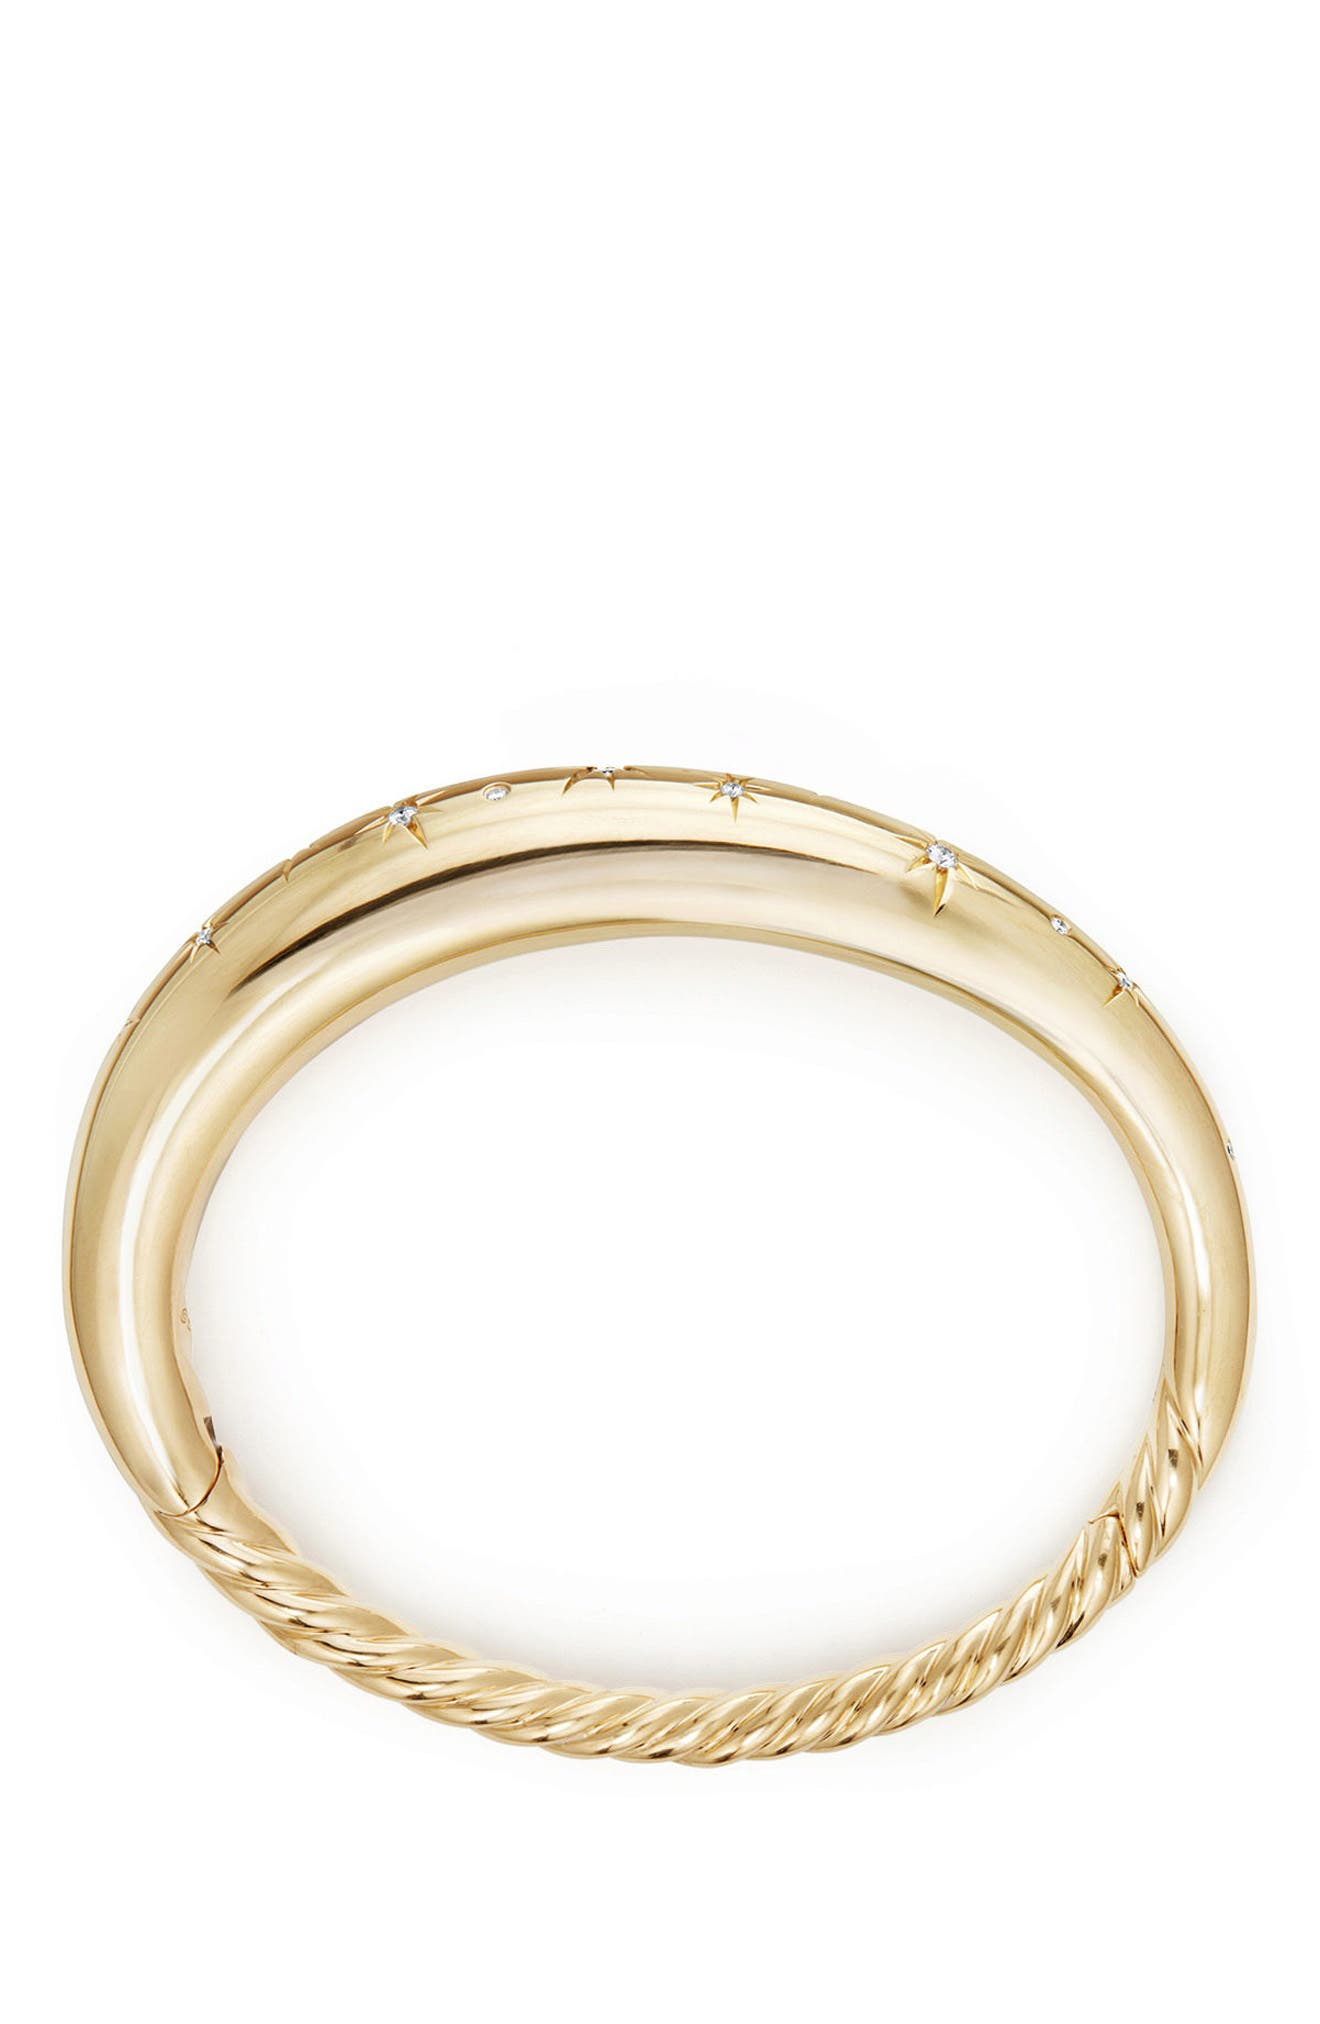 Pure Form<sup>®</sup> CollectionPure Form<sup>®</sup> Smooth 18K Gold Bracelet with Diamonds, 9.5mm,                             Alternate thumbnail 2, color,                             YELLOW GOLD